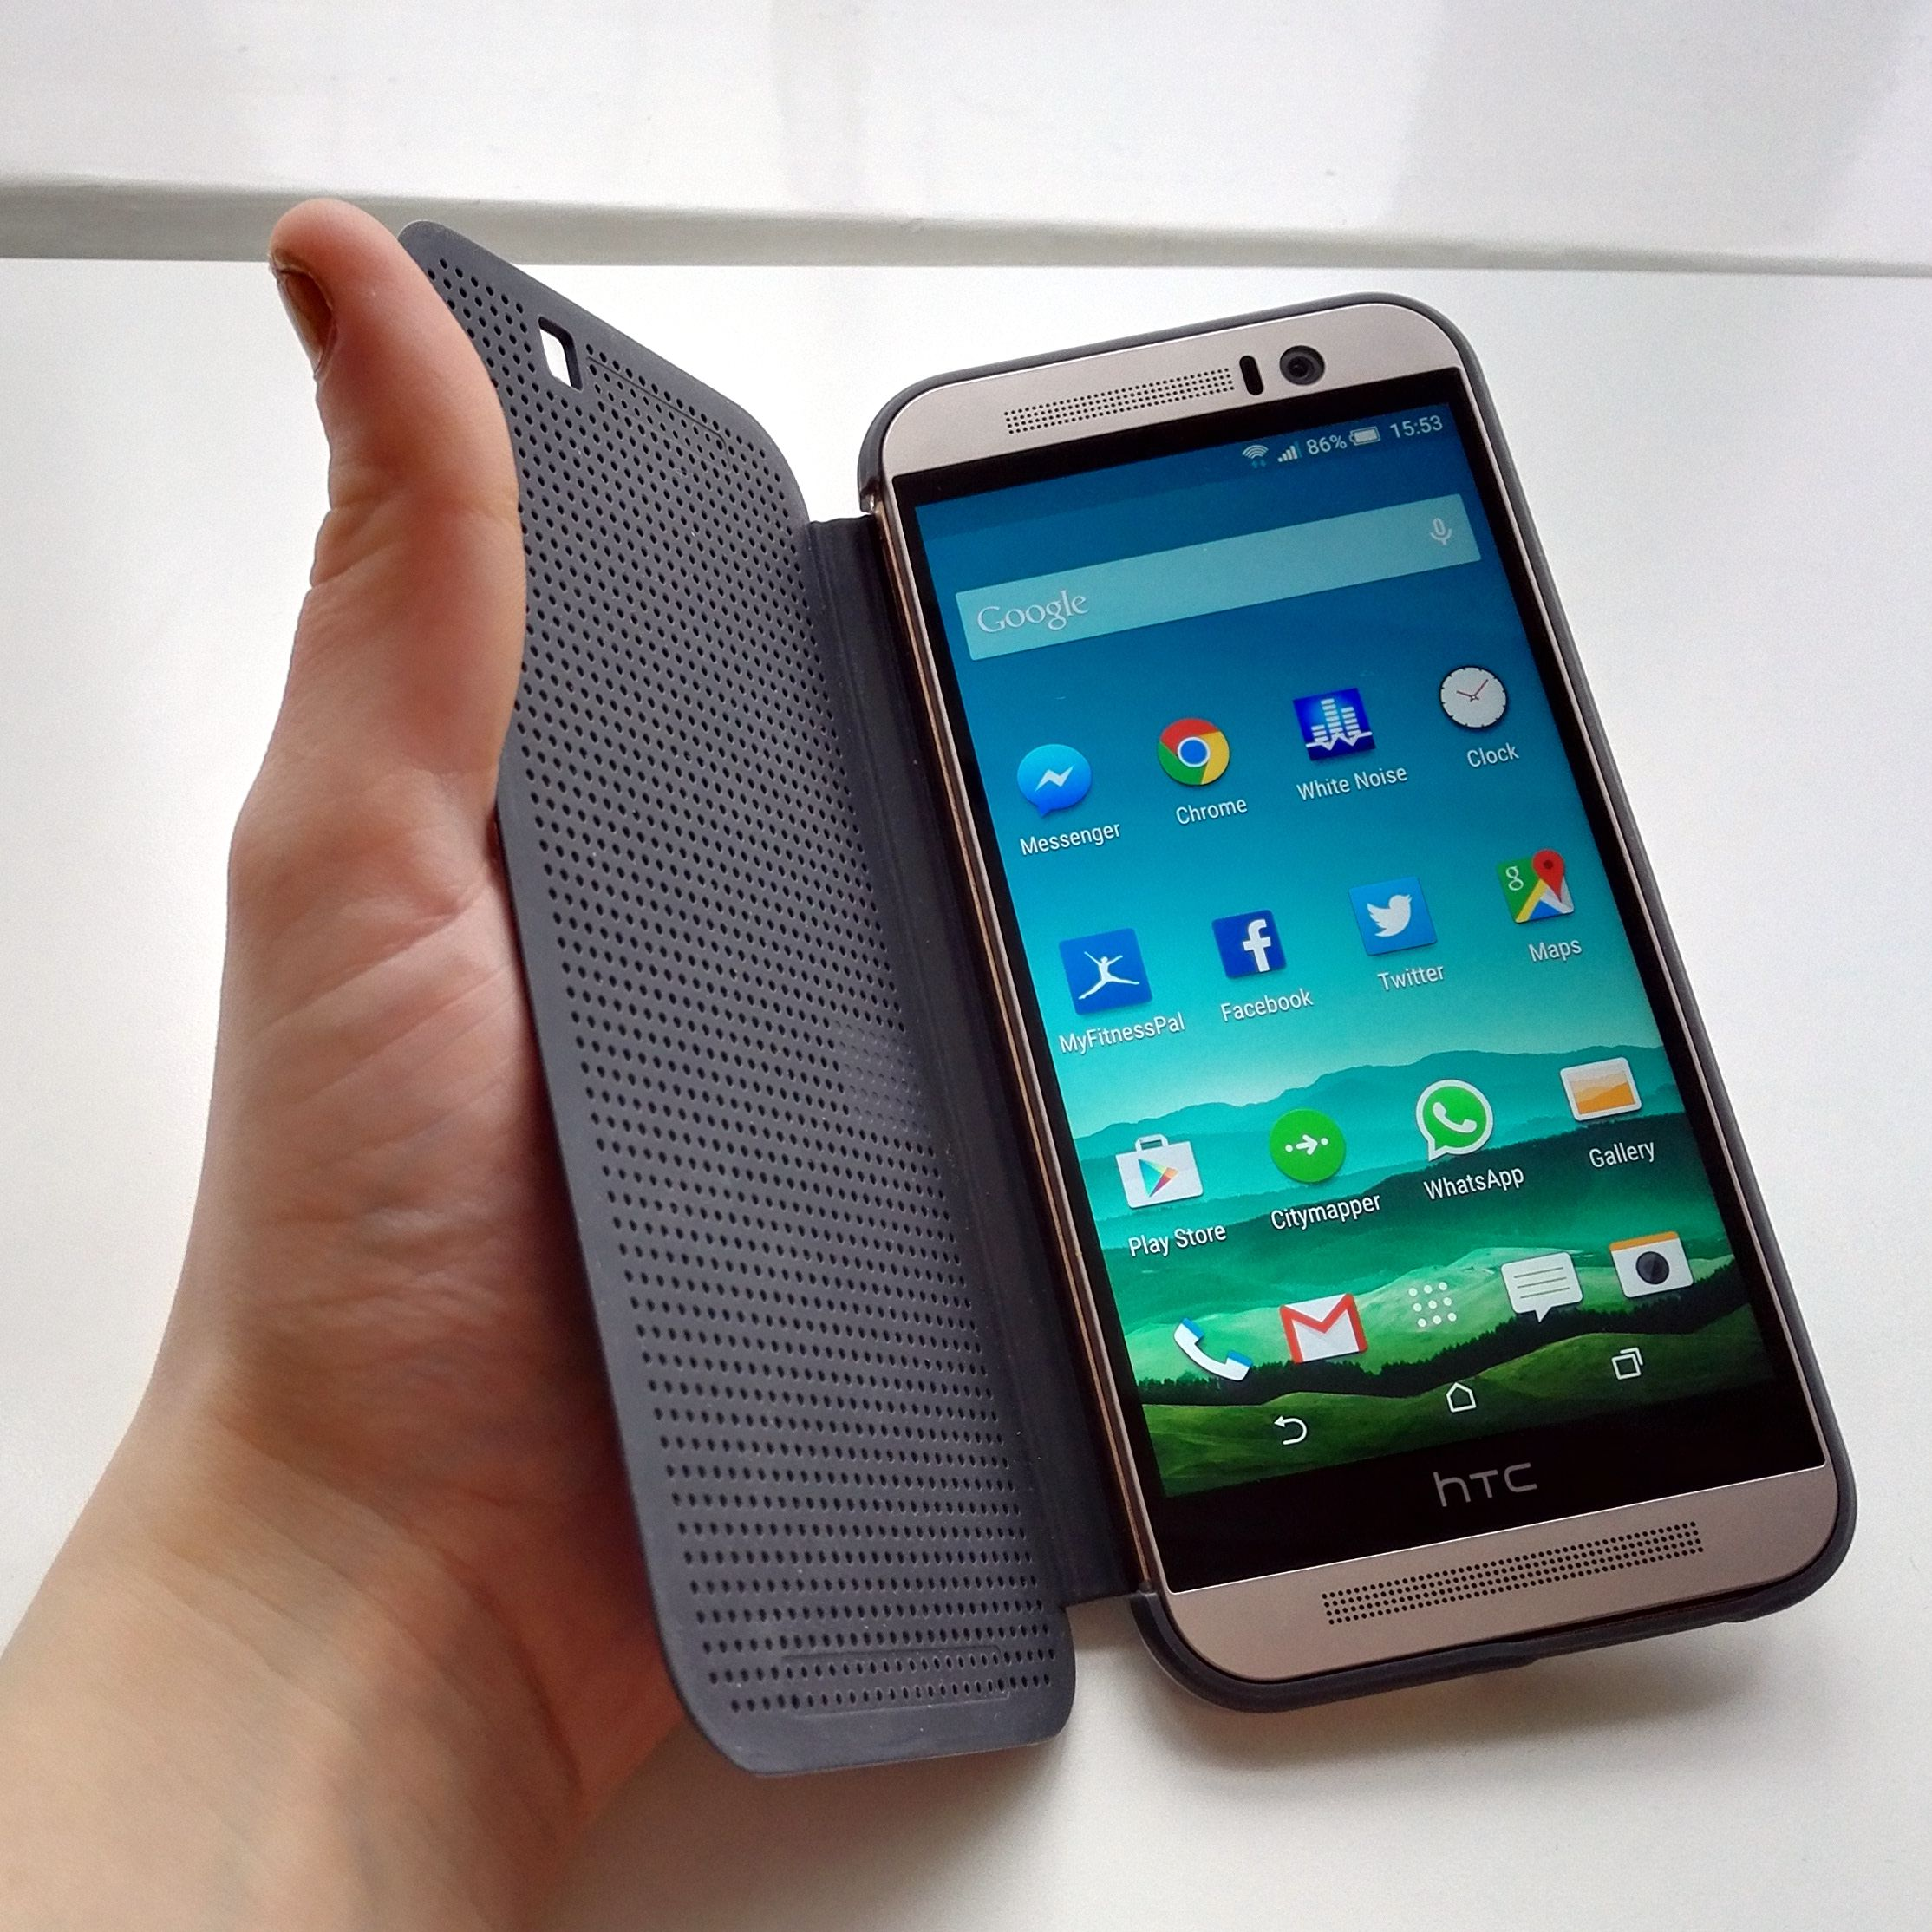 htc one m9 dot view case review 8 bit cool for the smartphone age